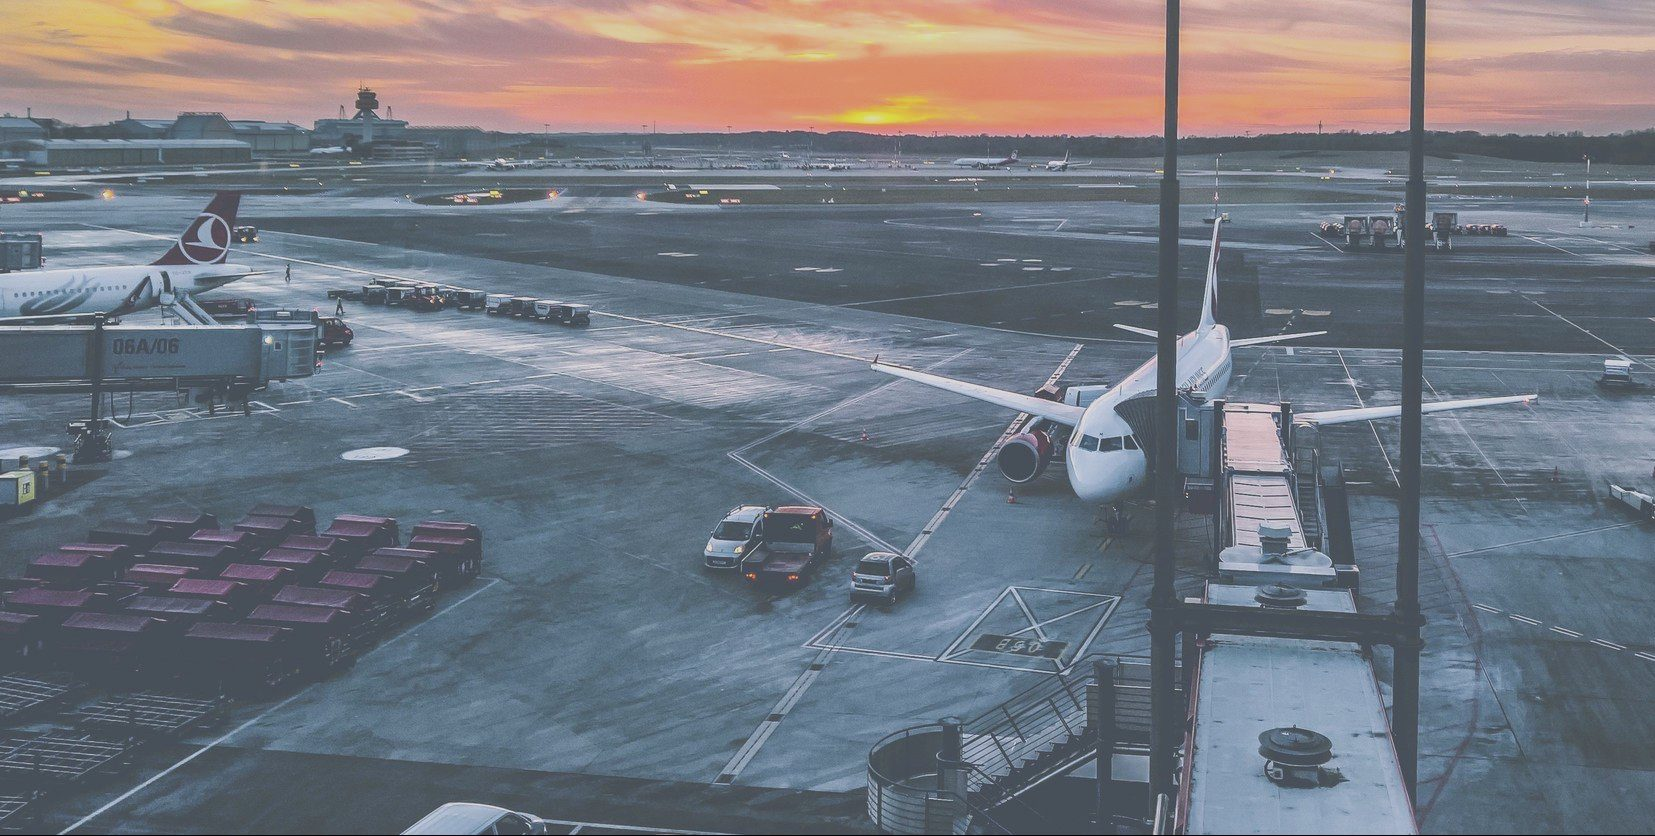 A quiet airfield at sunset, with 2 planes currently parked on the runway and other machinery around them